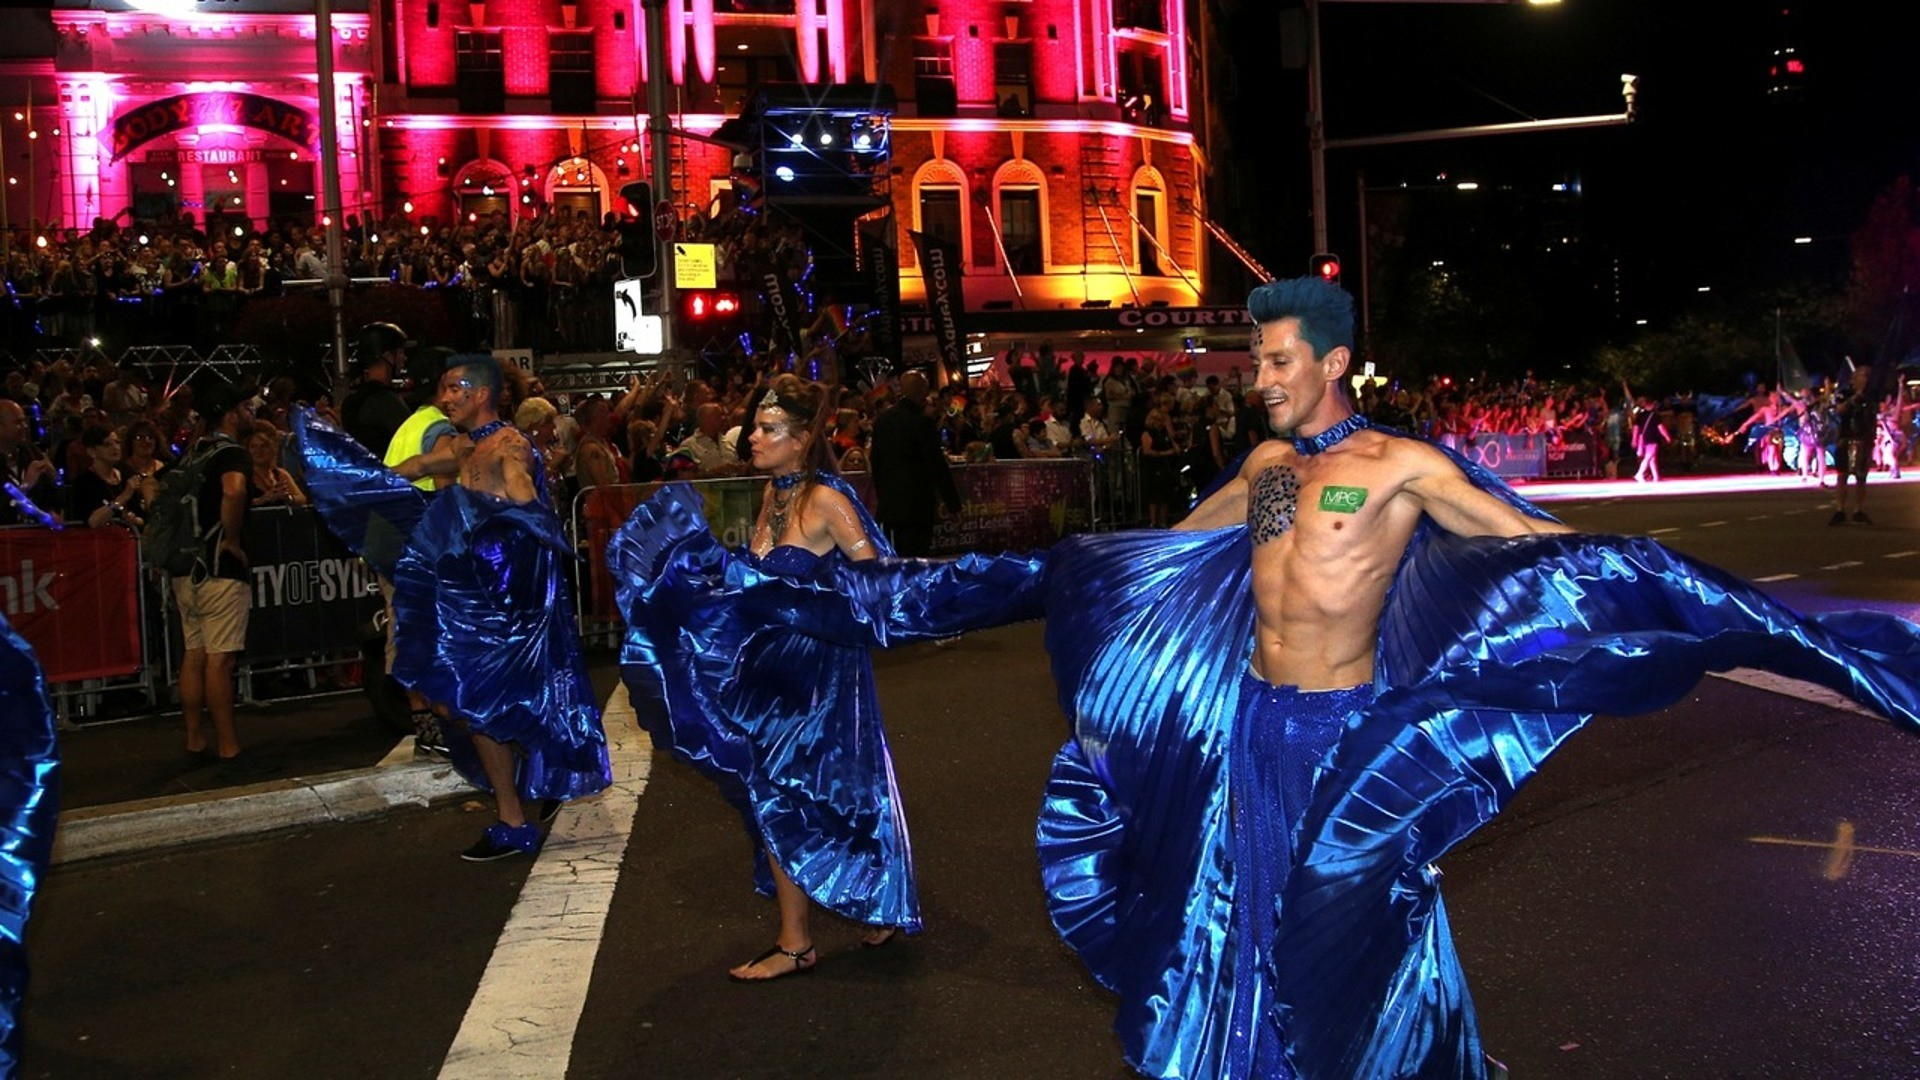 1920x1080 Sydney set to sparkle as city celebrates Mardi Gras